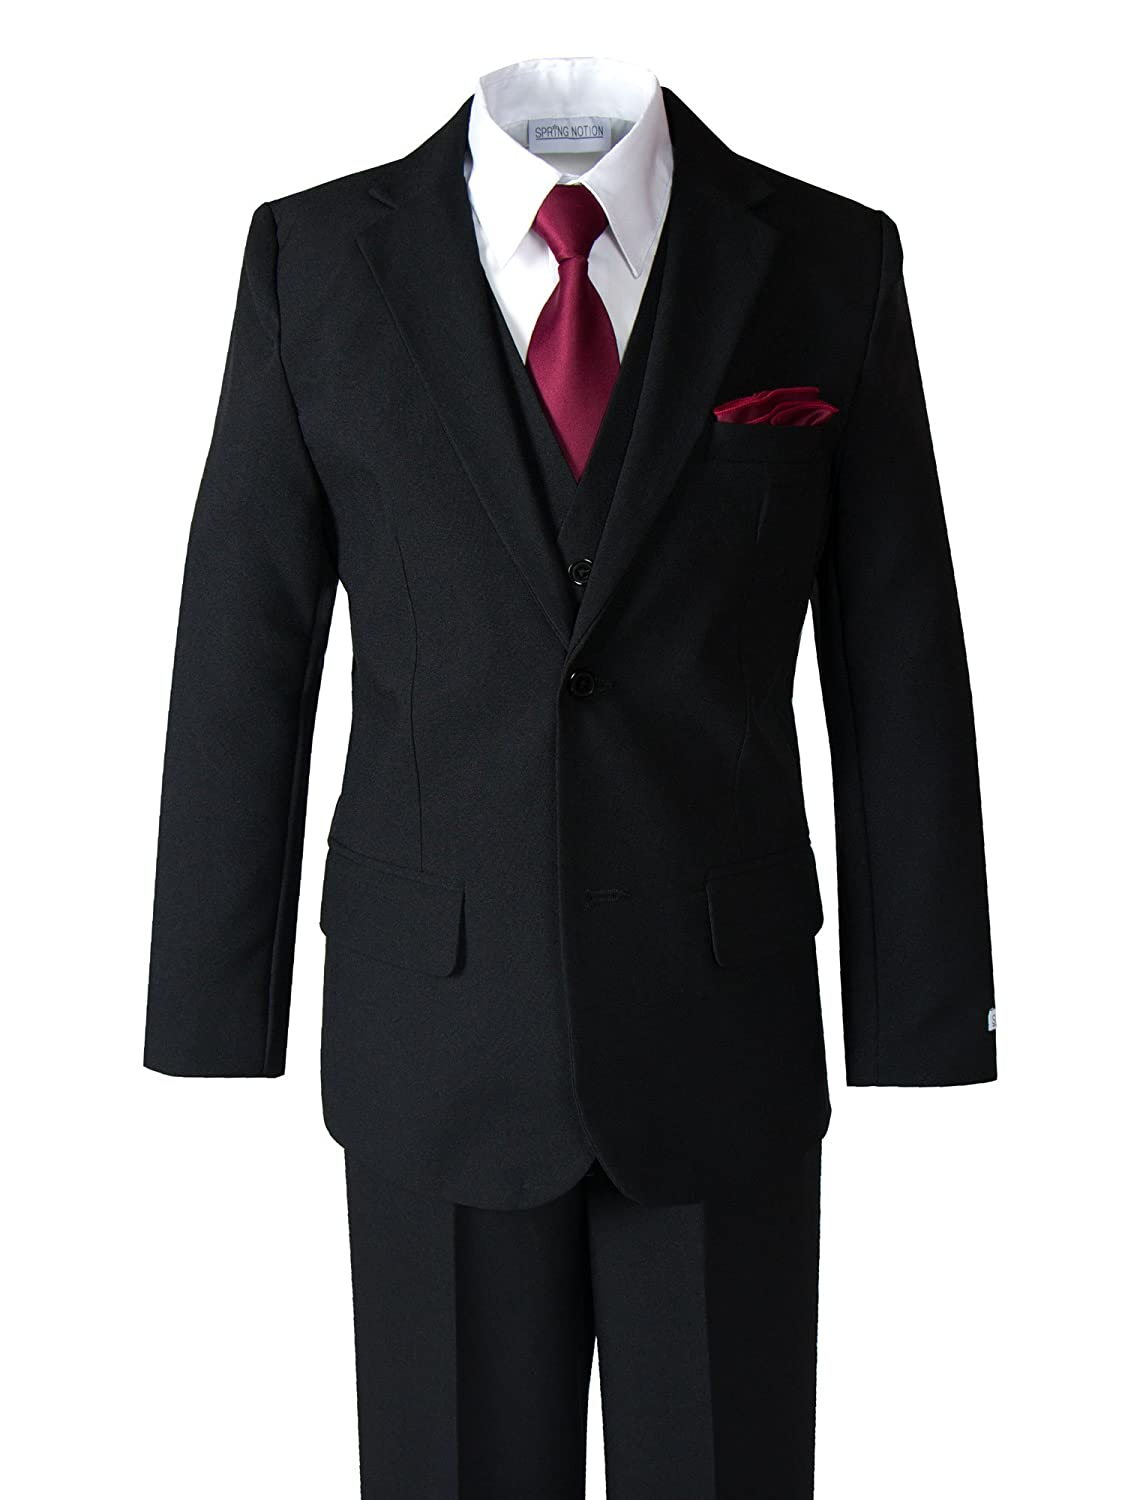 Spring Notion Big Boys' Modern Fit Dress Suit Set with Necktie and Handkerchief ERF030-SNS-030-TH